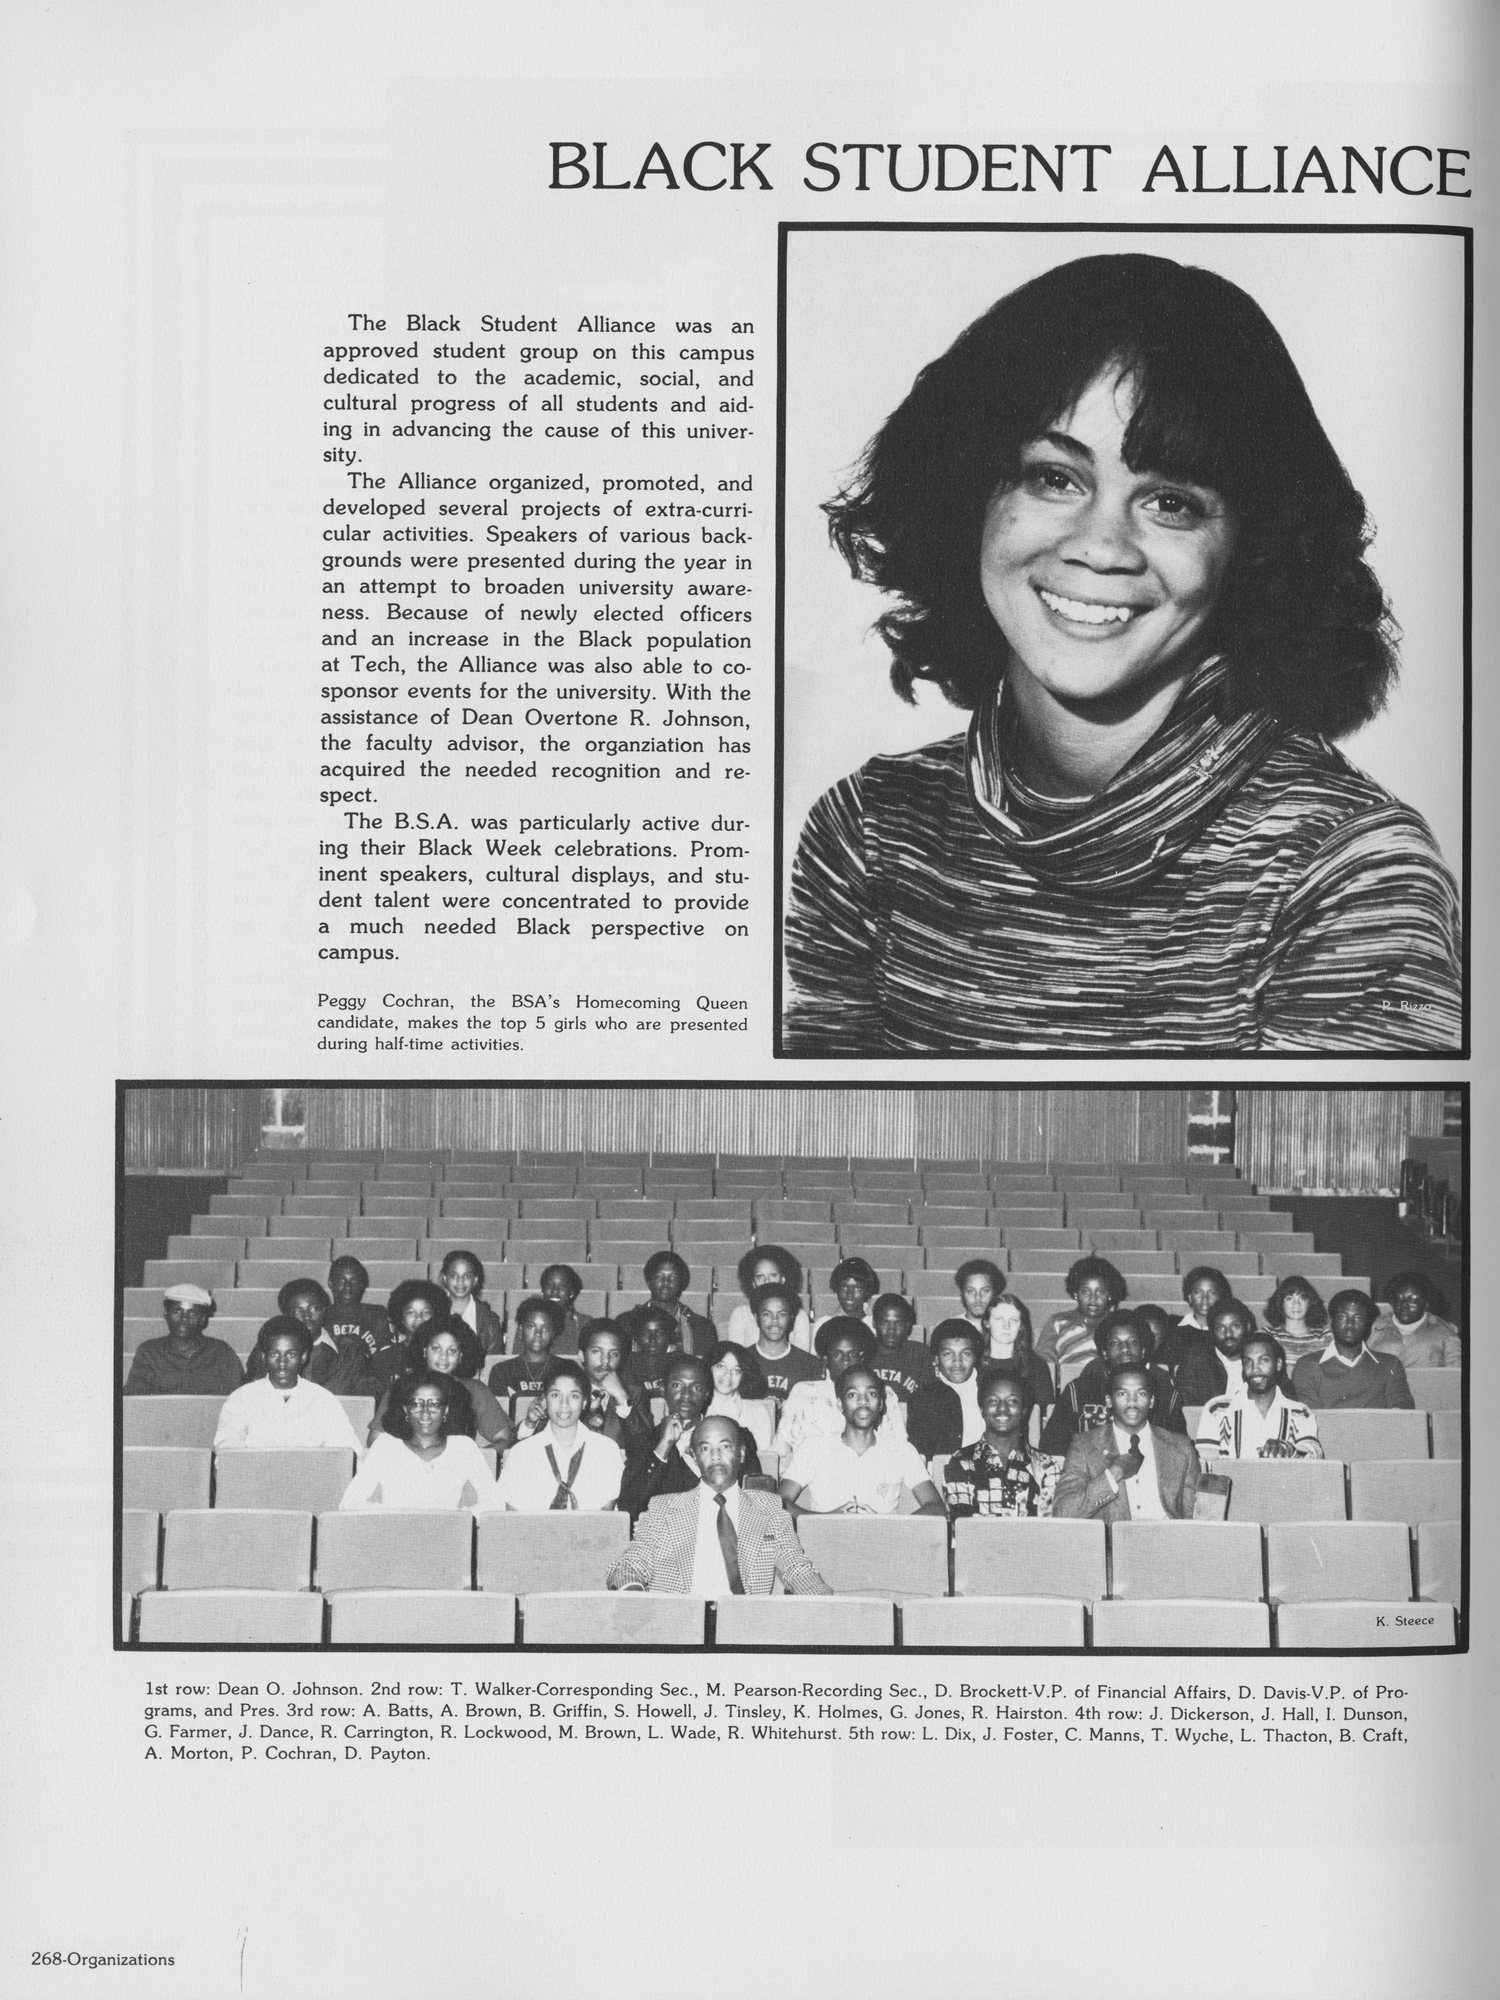 http://spec.lib.vt.edu/pickup/Omeka_upload/1979_Bugle_pg268_BSA.jpg